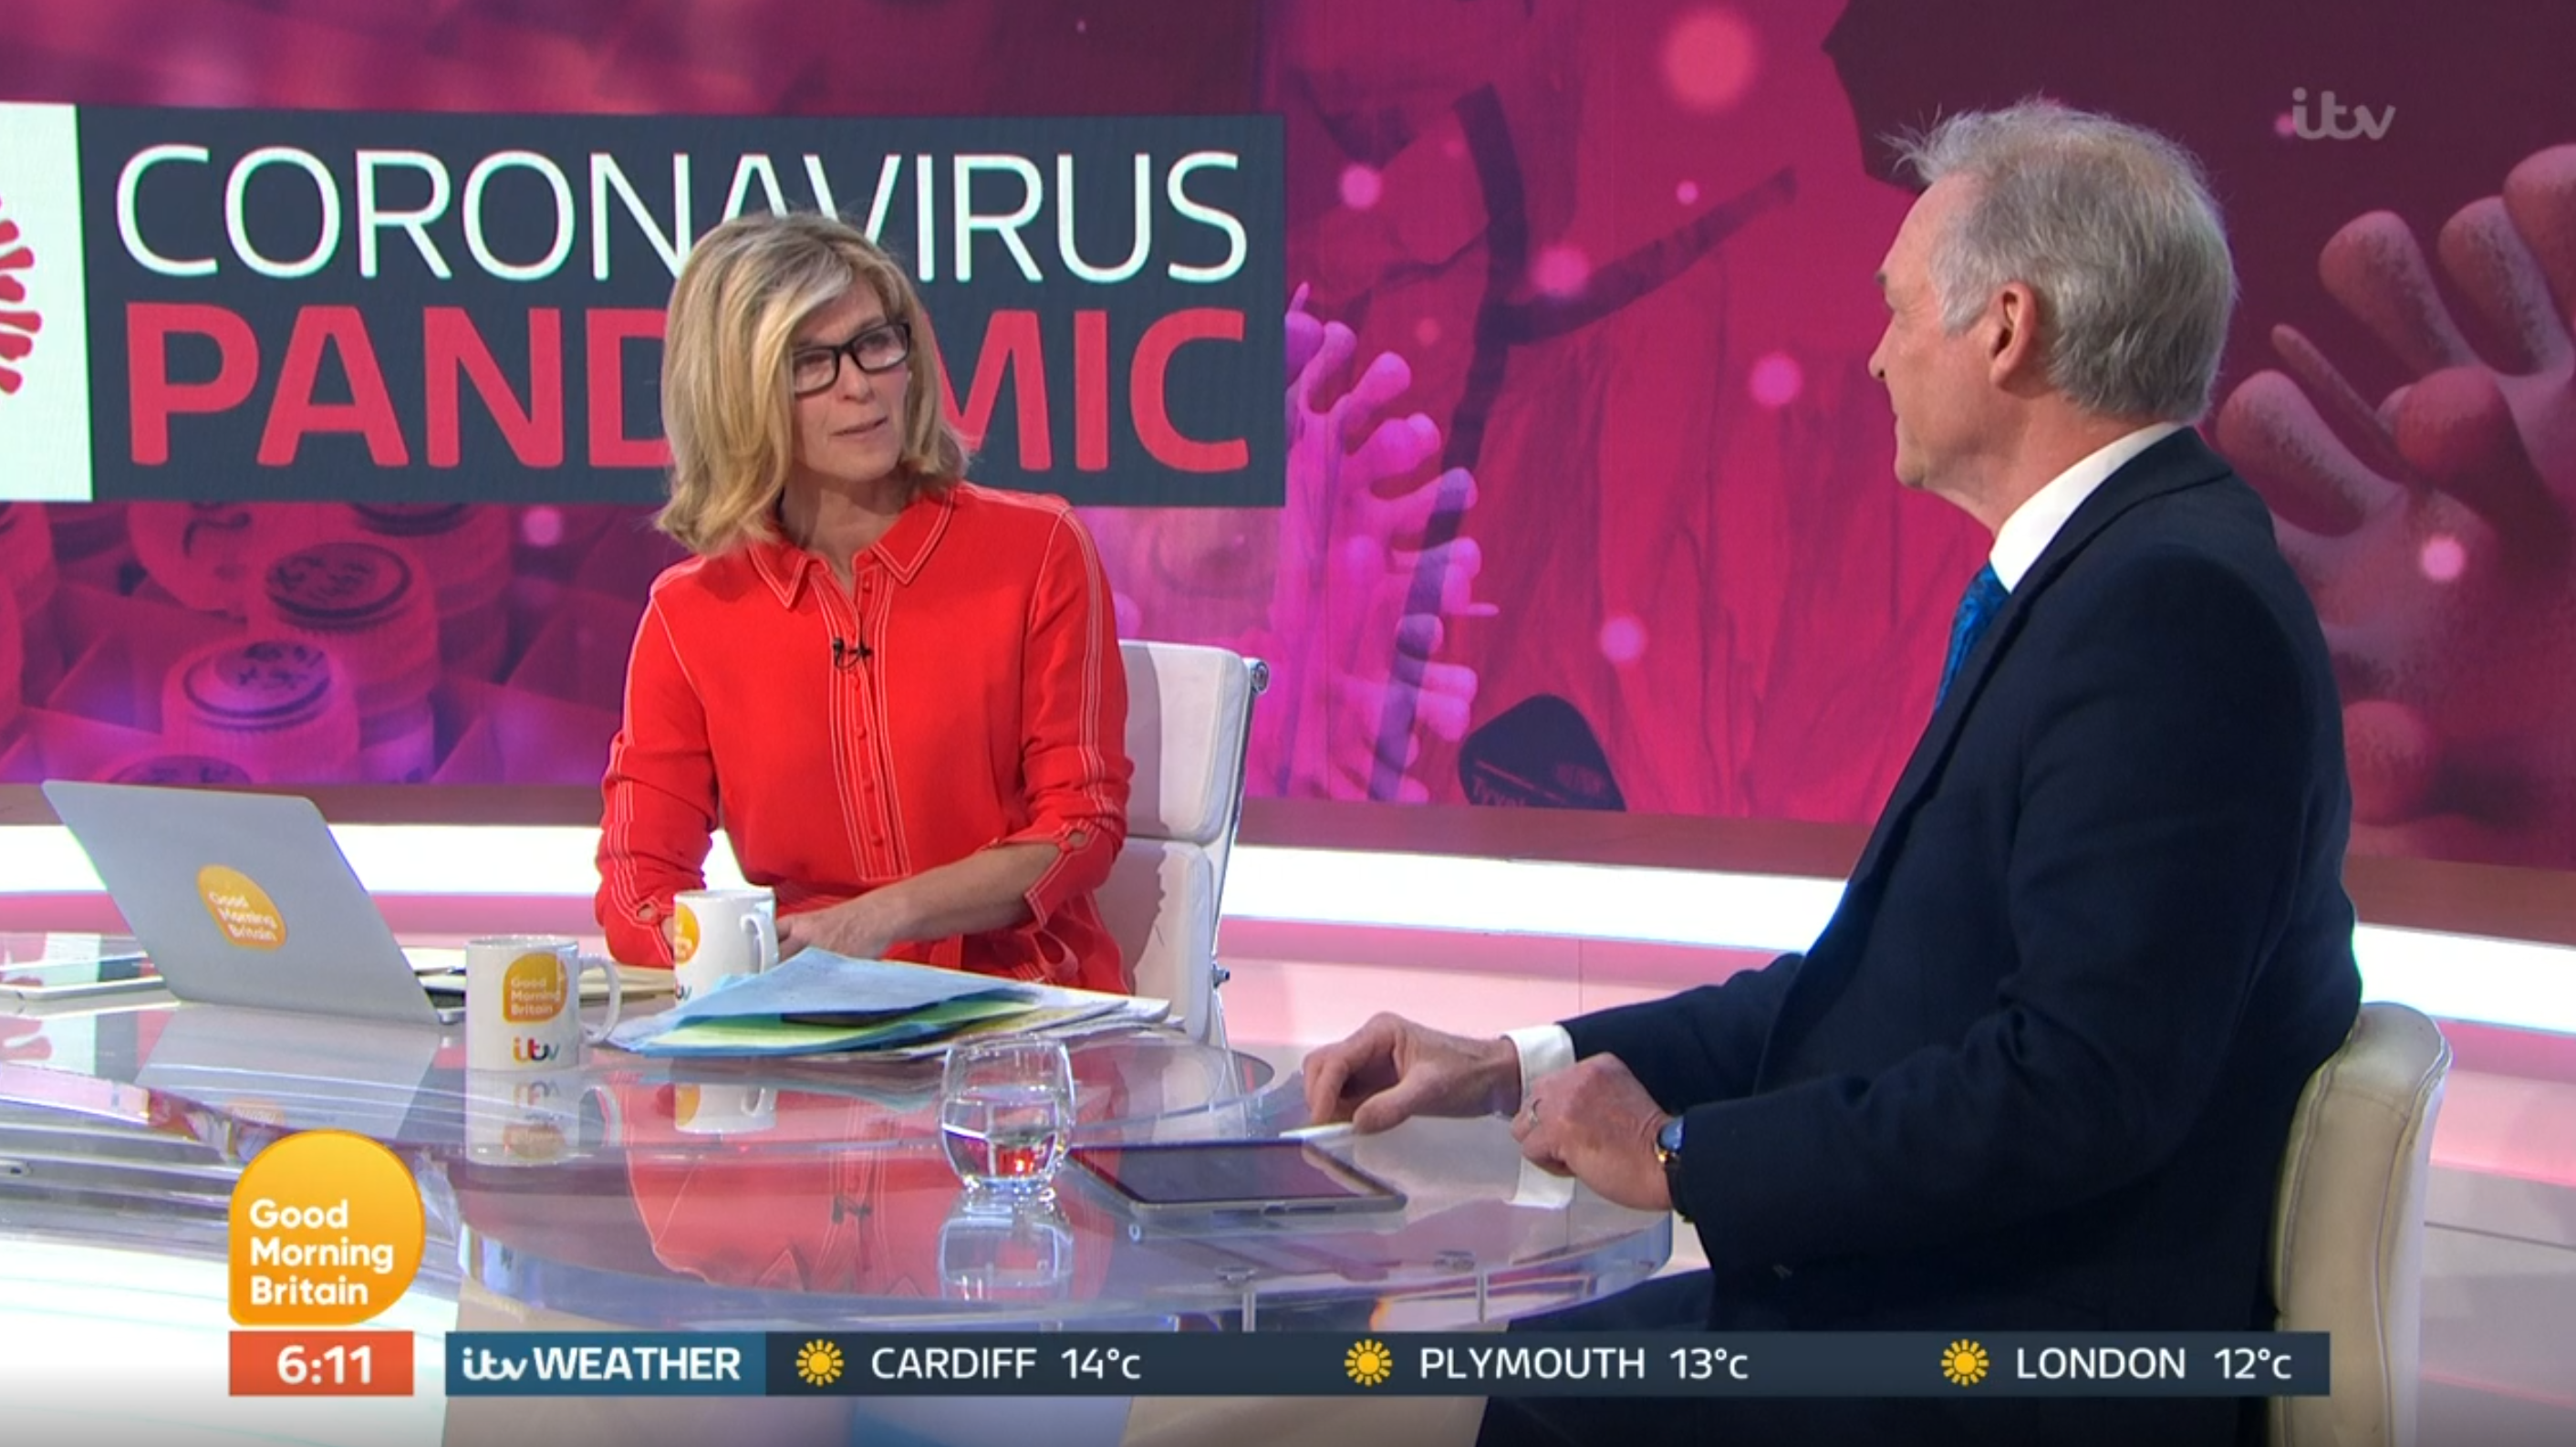 Kate Garraway Dr Hilary Good Morning Britain. (Credit: ITV)